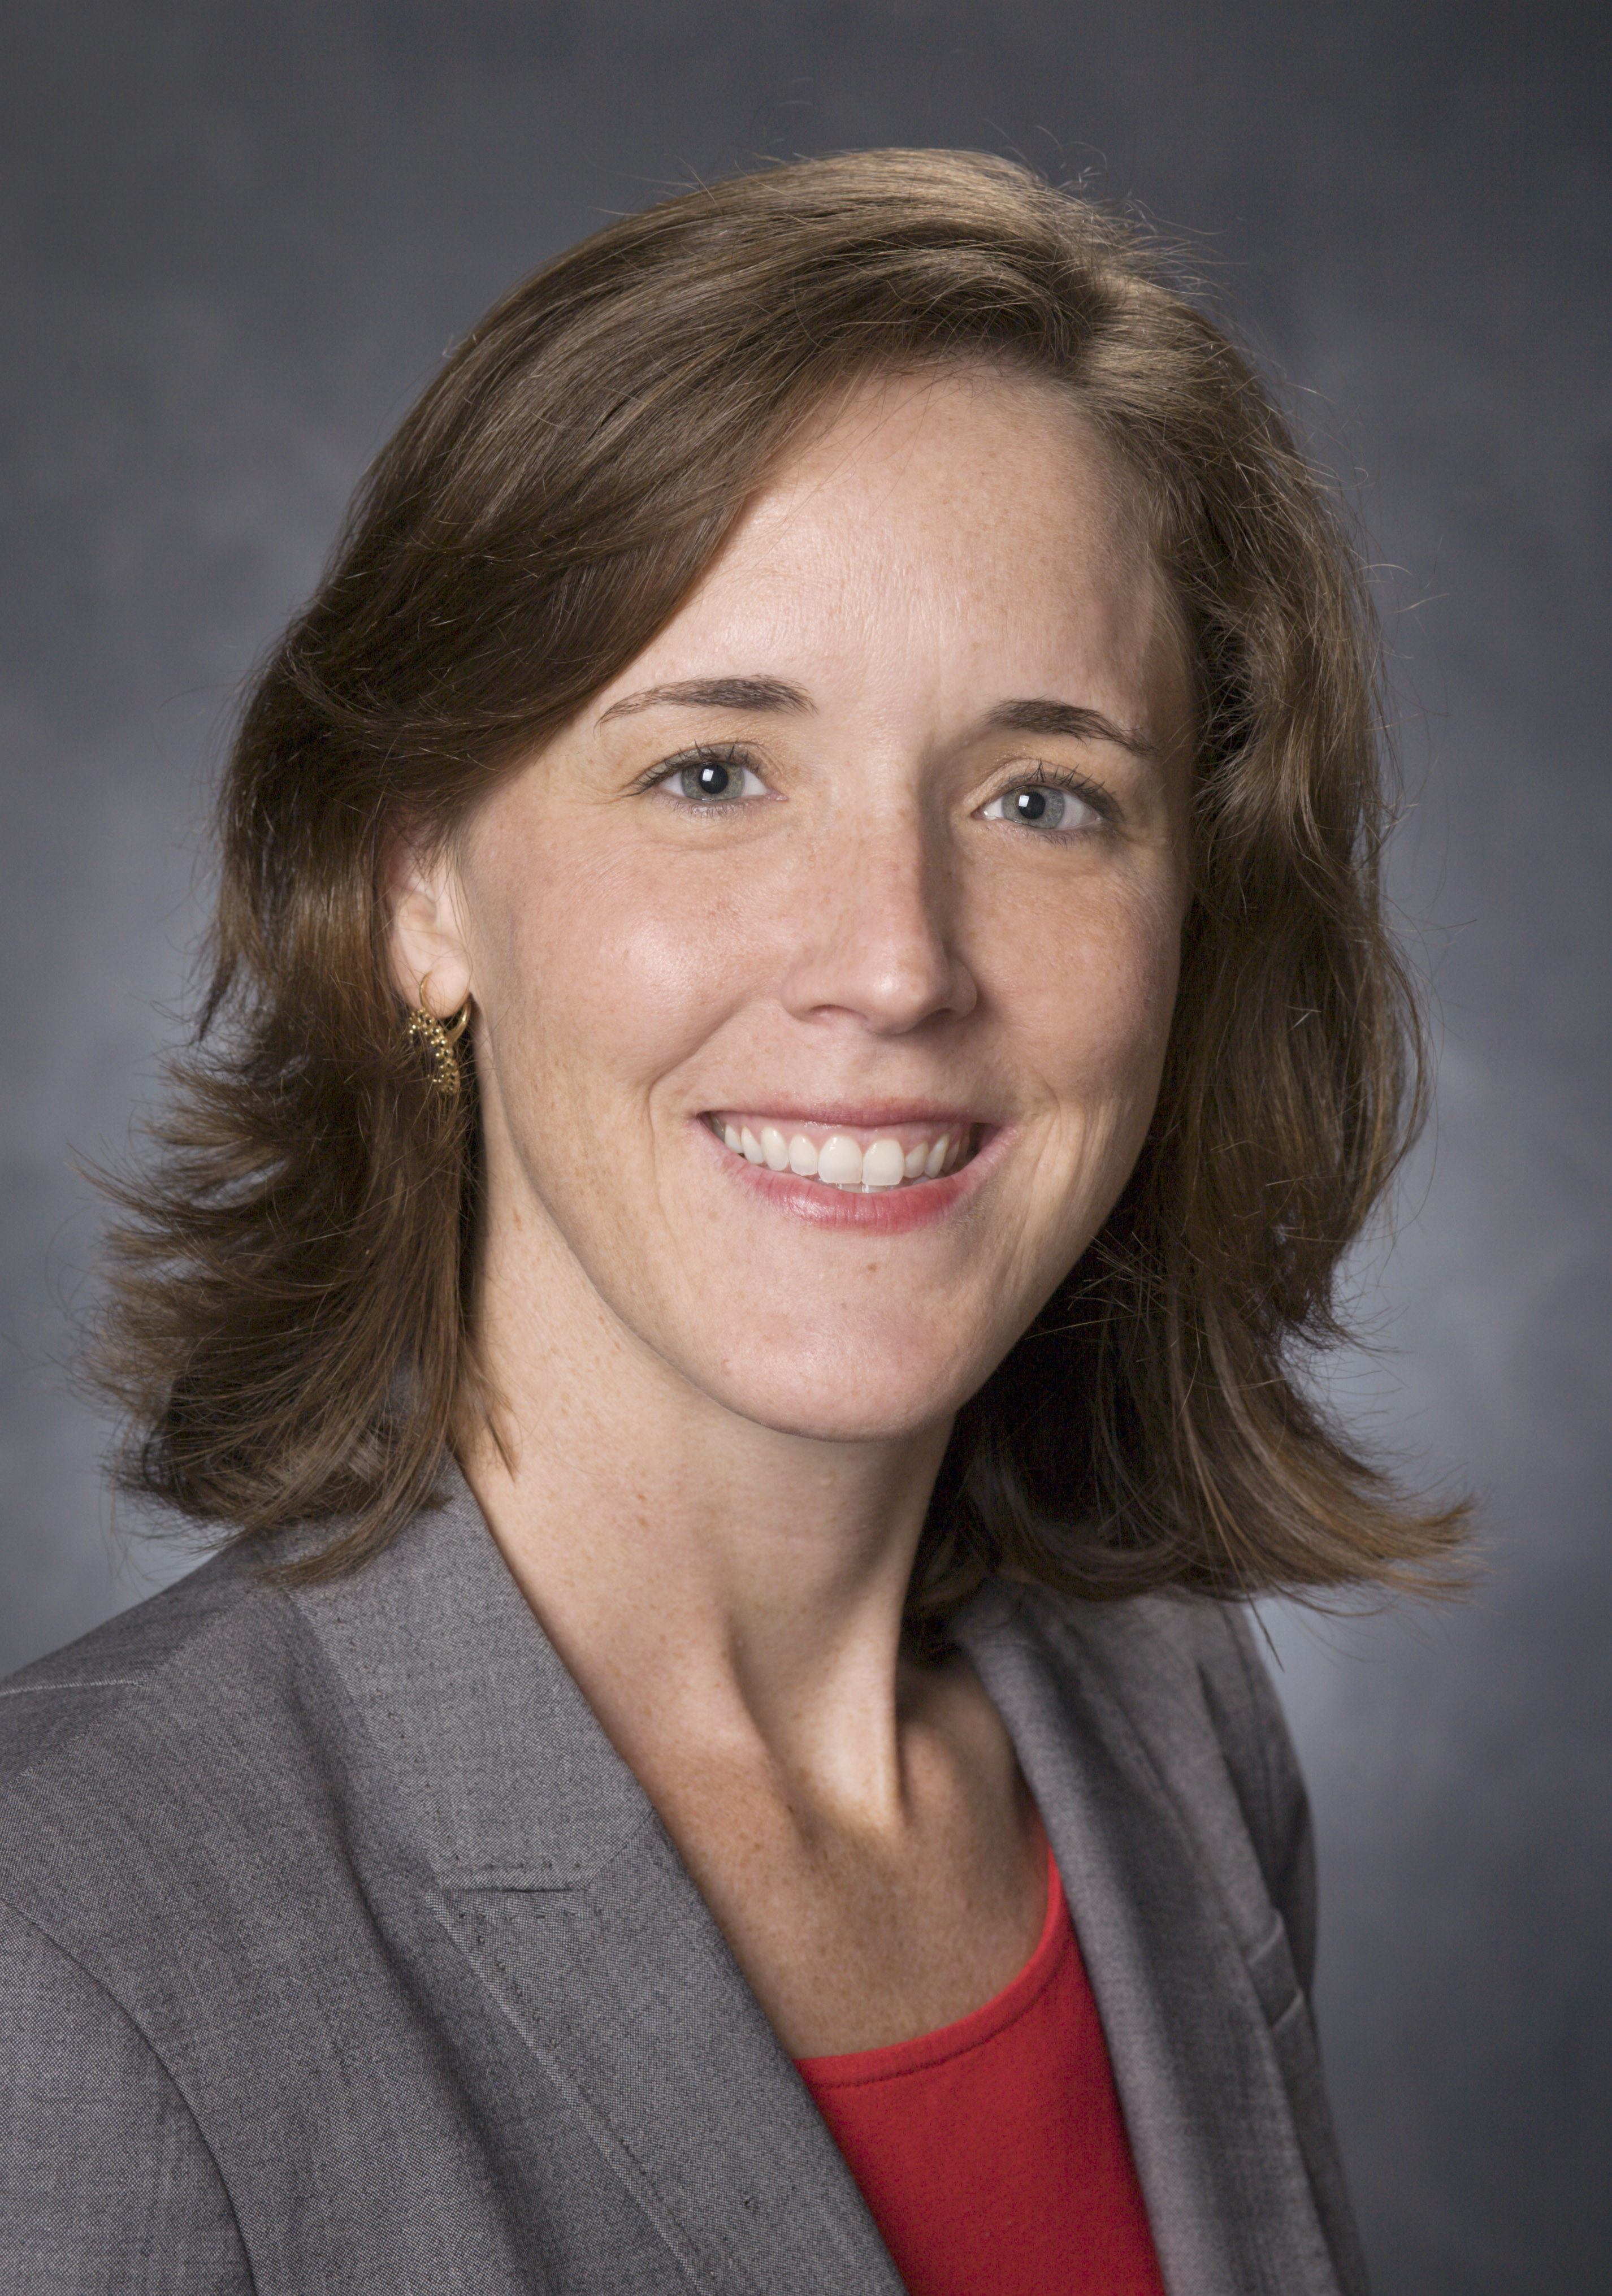 Tricia Chastain, Director of State Relations for the University of Georgia